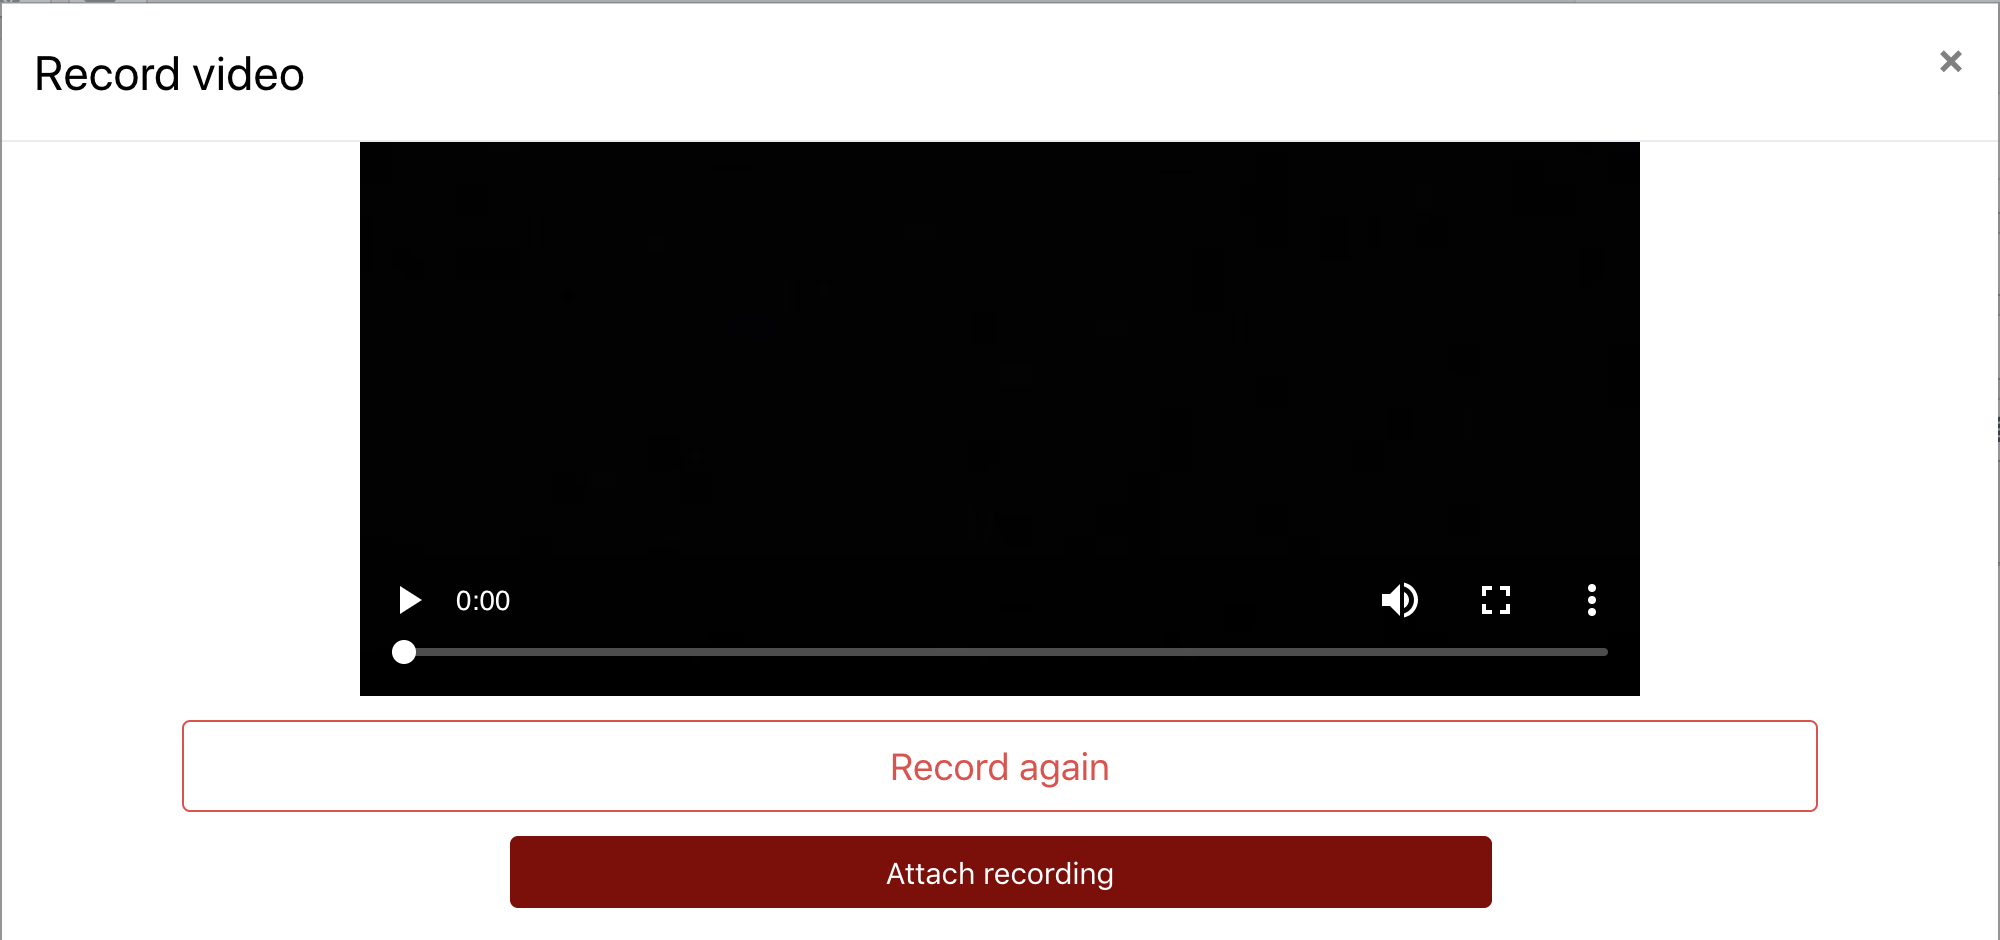 An image of a recorded video, with the record again or attach recording options.